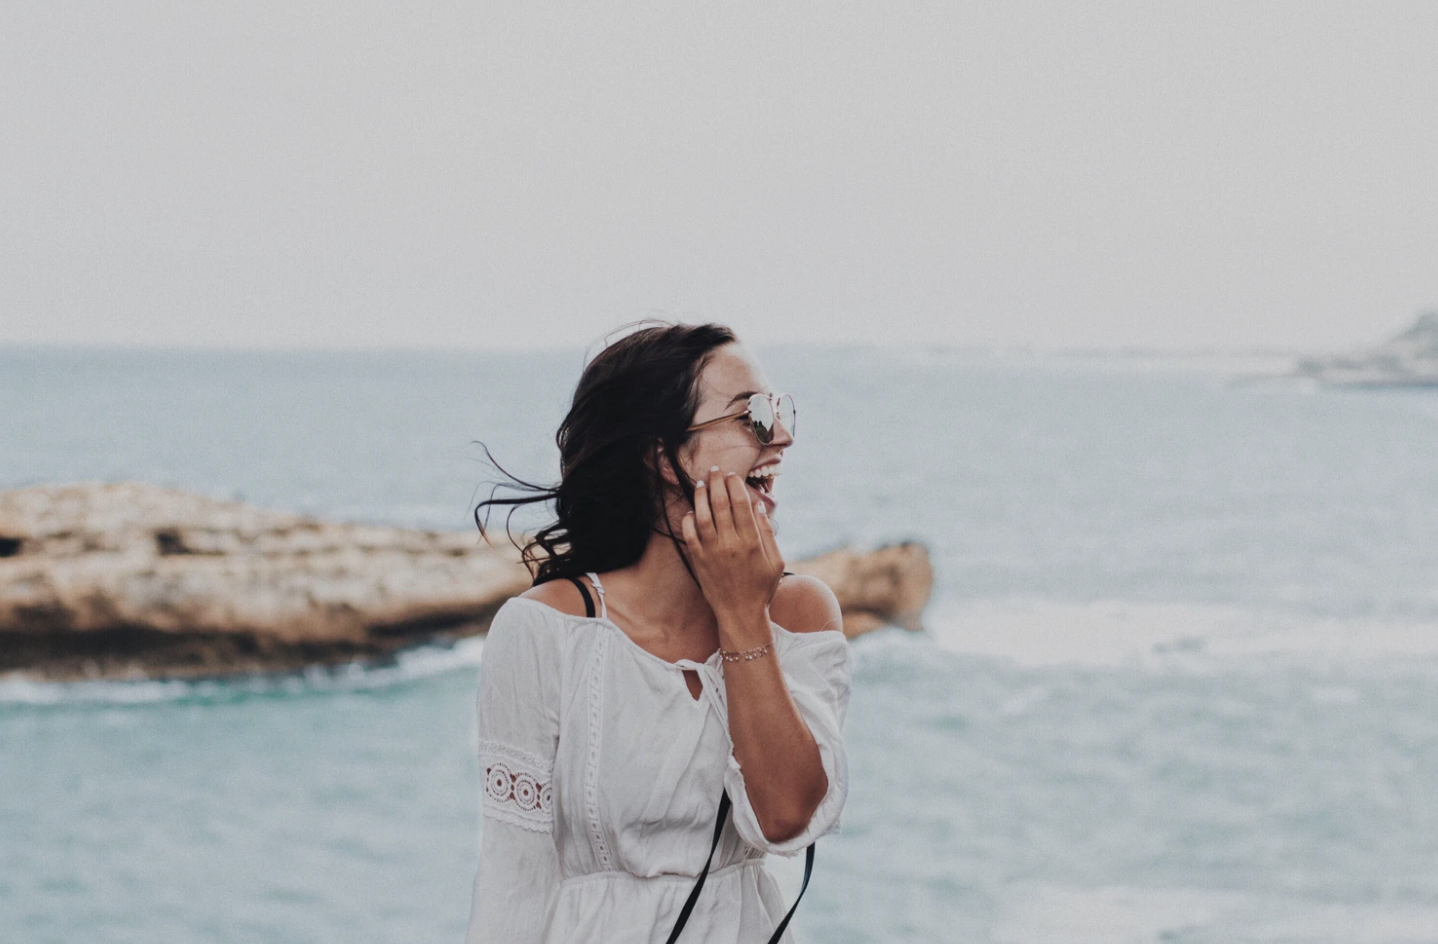 travel woman with sunglasses laughing on beach